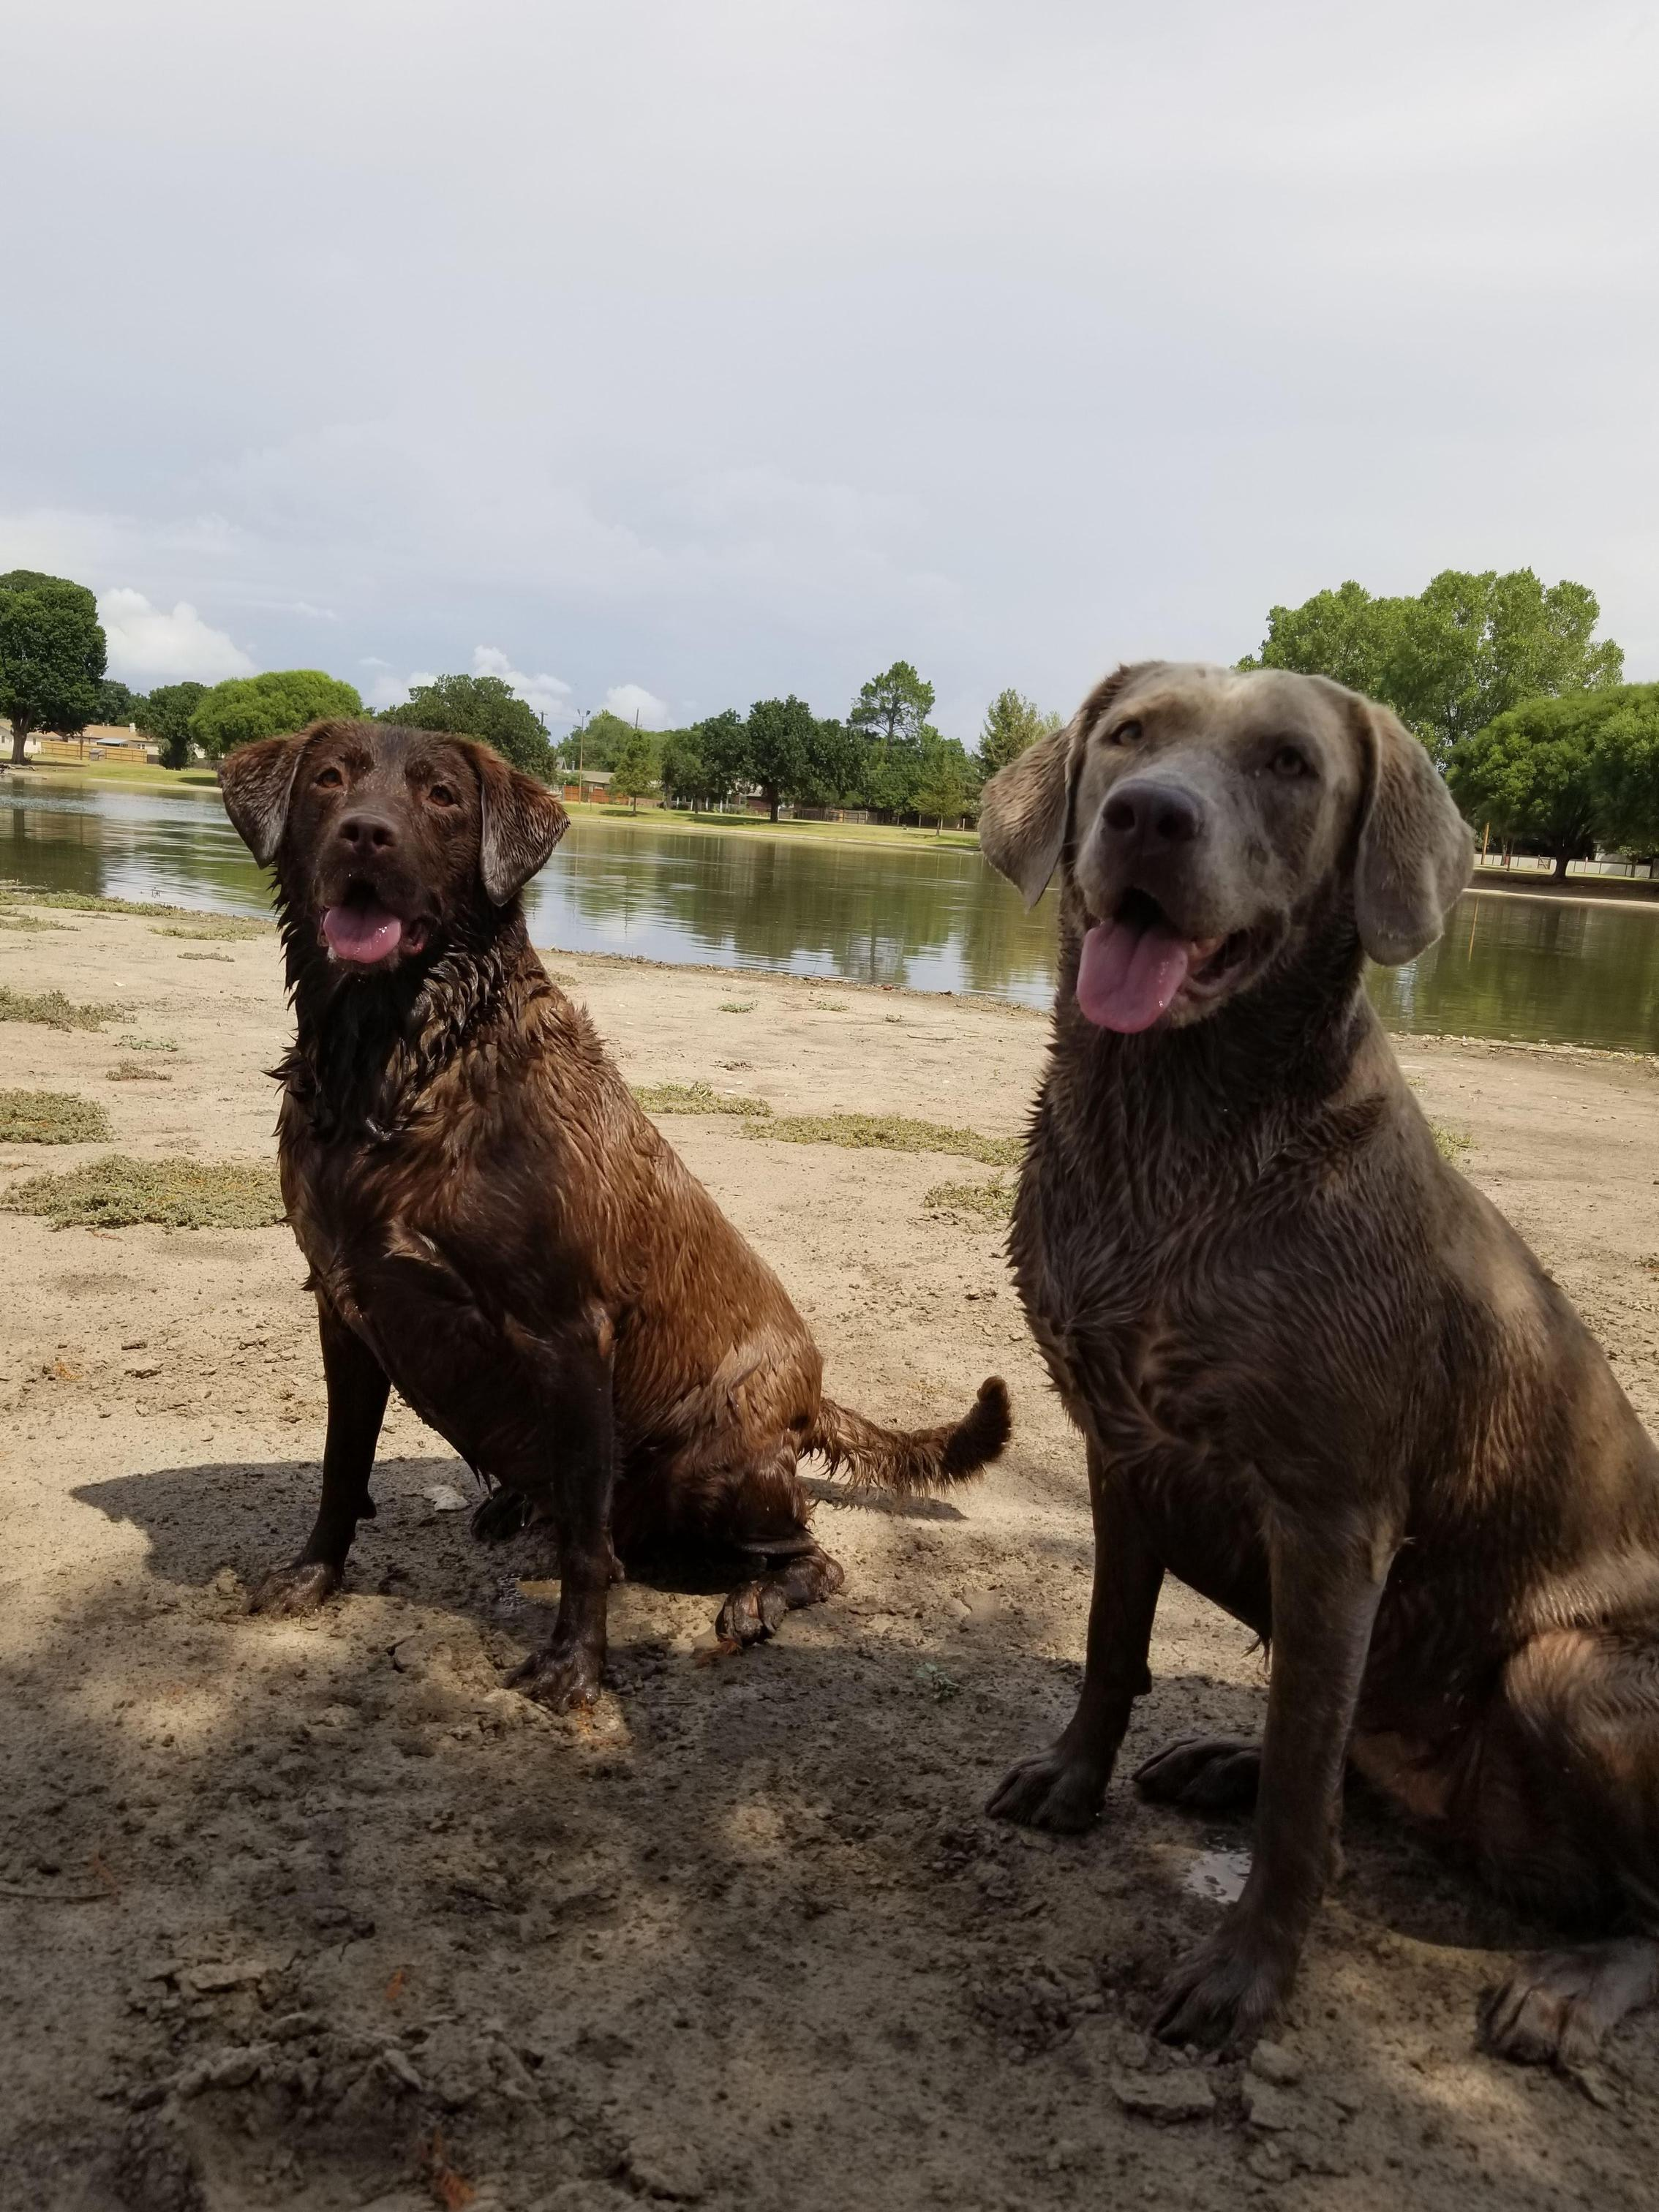 I have two dogs, Sadie and Khaleesi who I love taking to swim on the weekends.